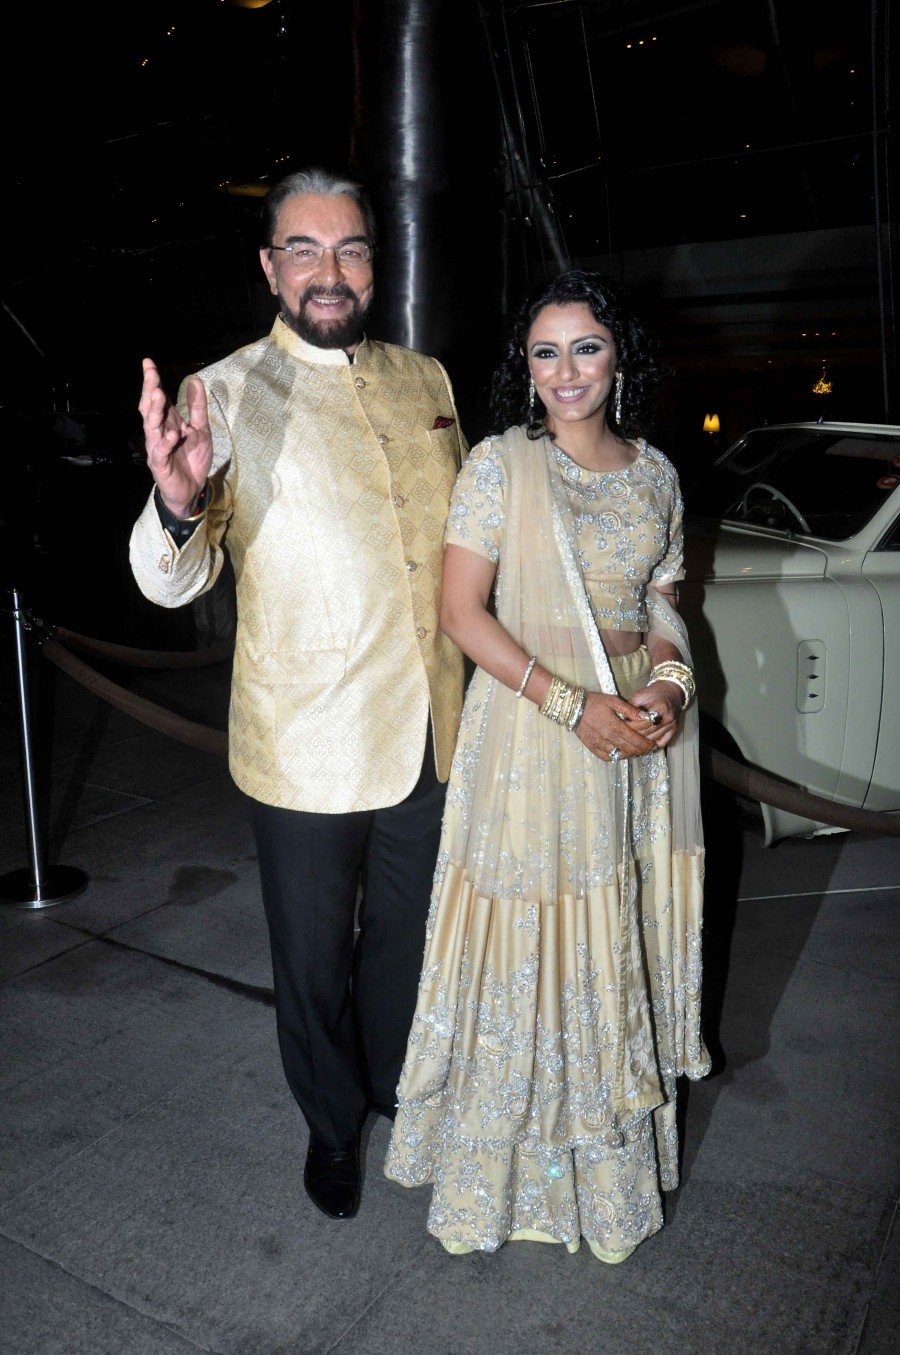 Kabir Bedi,kabir bedi 70th birthday,kabir bedi parveen dusanj wedding,Kabir Bedi marriage,Kabir Bedi wedding,kabir bedi marriage photos,Parveen Dusanj,Parveen Dusanj wedding,Parveen Dusanj marriage,kabir bedi parveen dusanj,actor Kabir Bedi